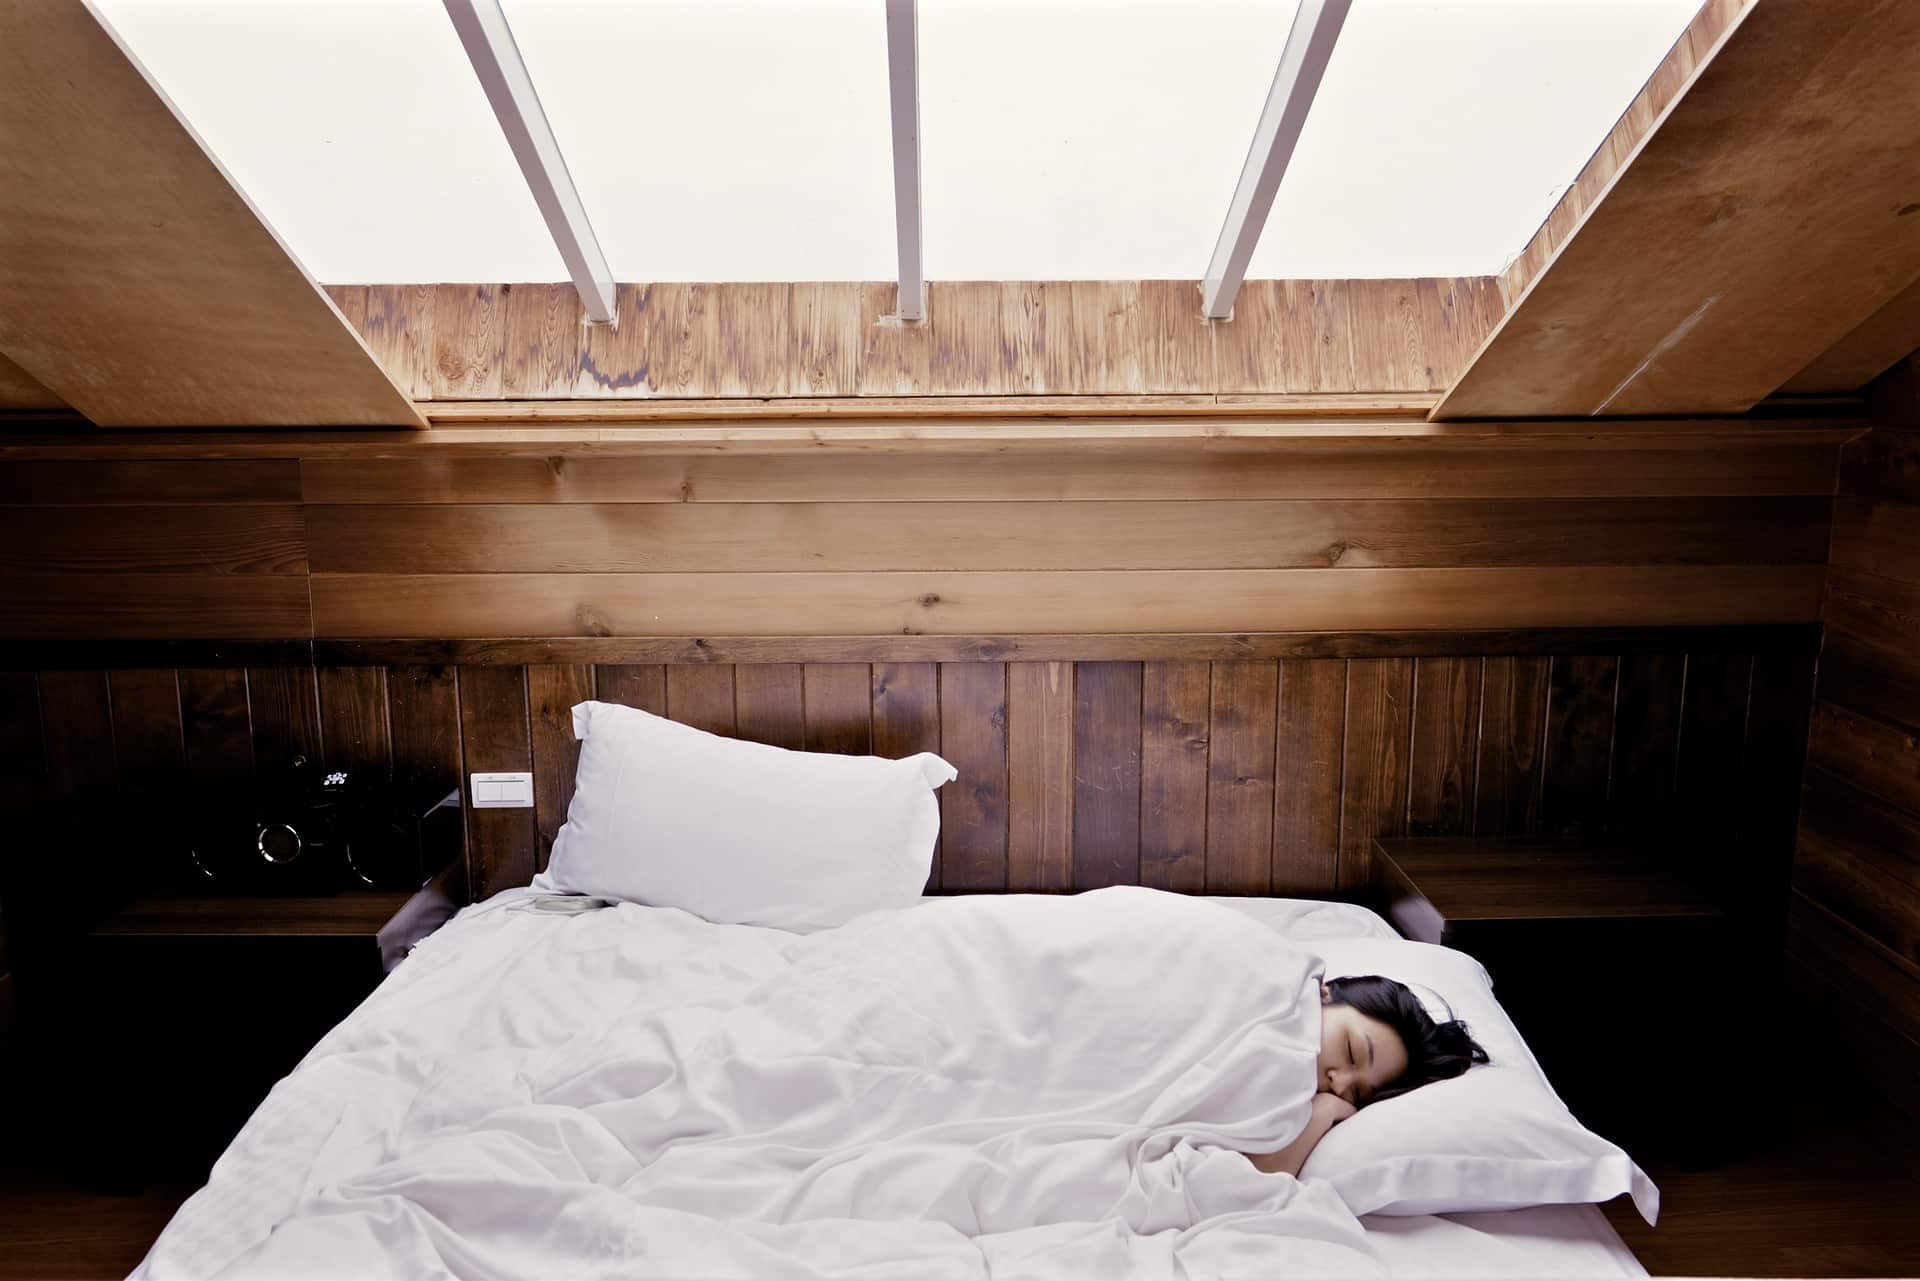 Top 5 Benefits from Using Suitable Mattresses for Your Body. Skylight in the chic classic bedroom